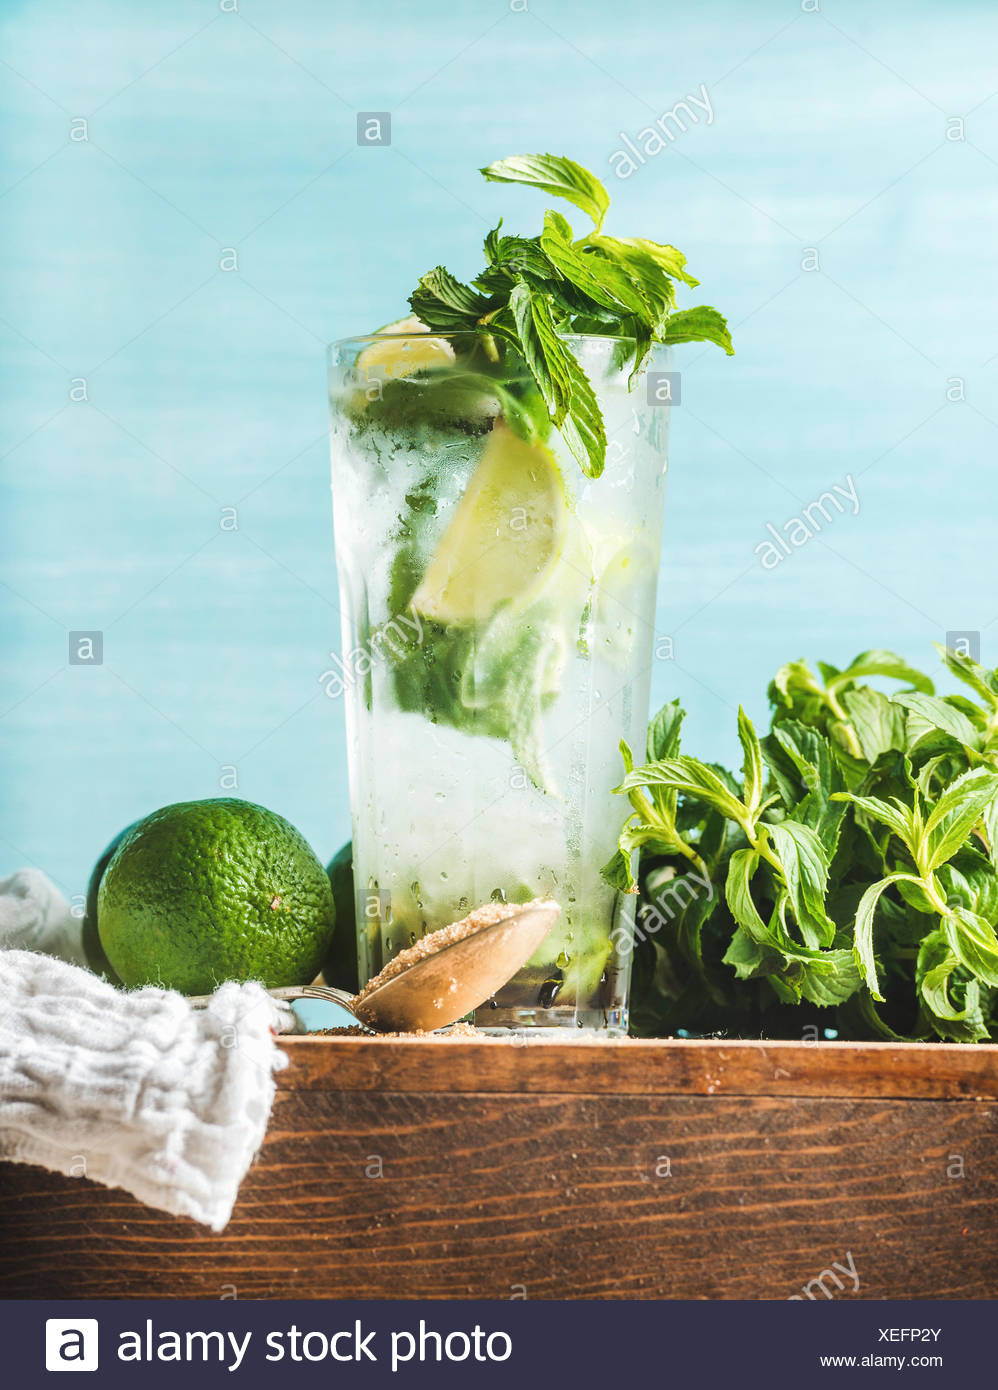 Homemade Mojito cocktail in tall glass served with bunch of mint, brown sugar and limes on wooden board. Turquoise blue backgrou - Stock Image